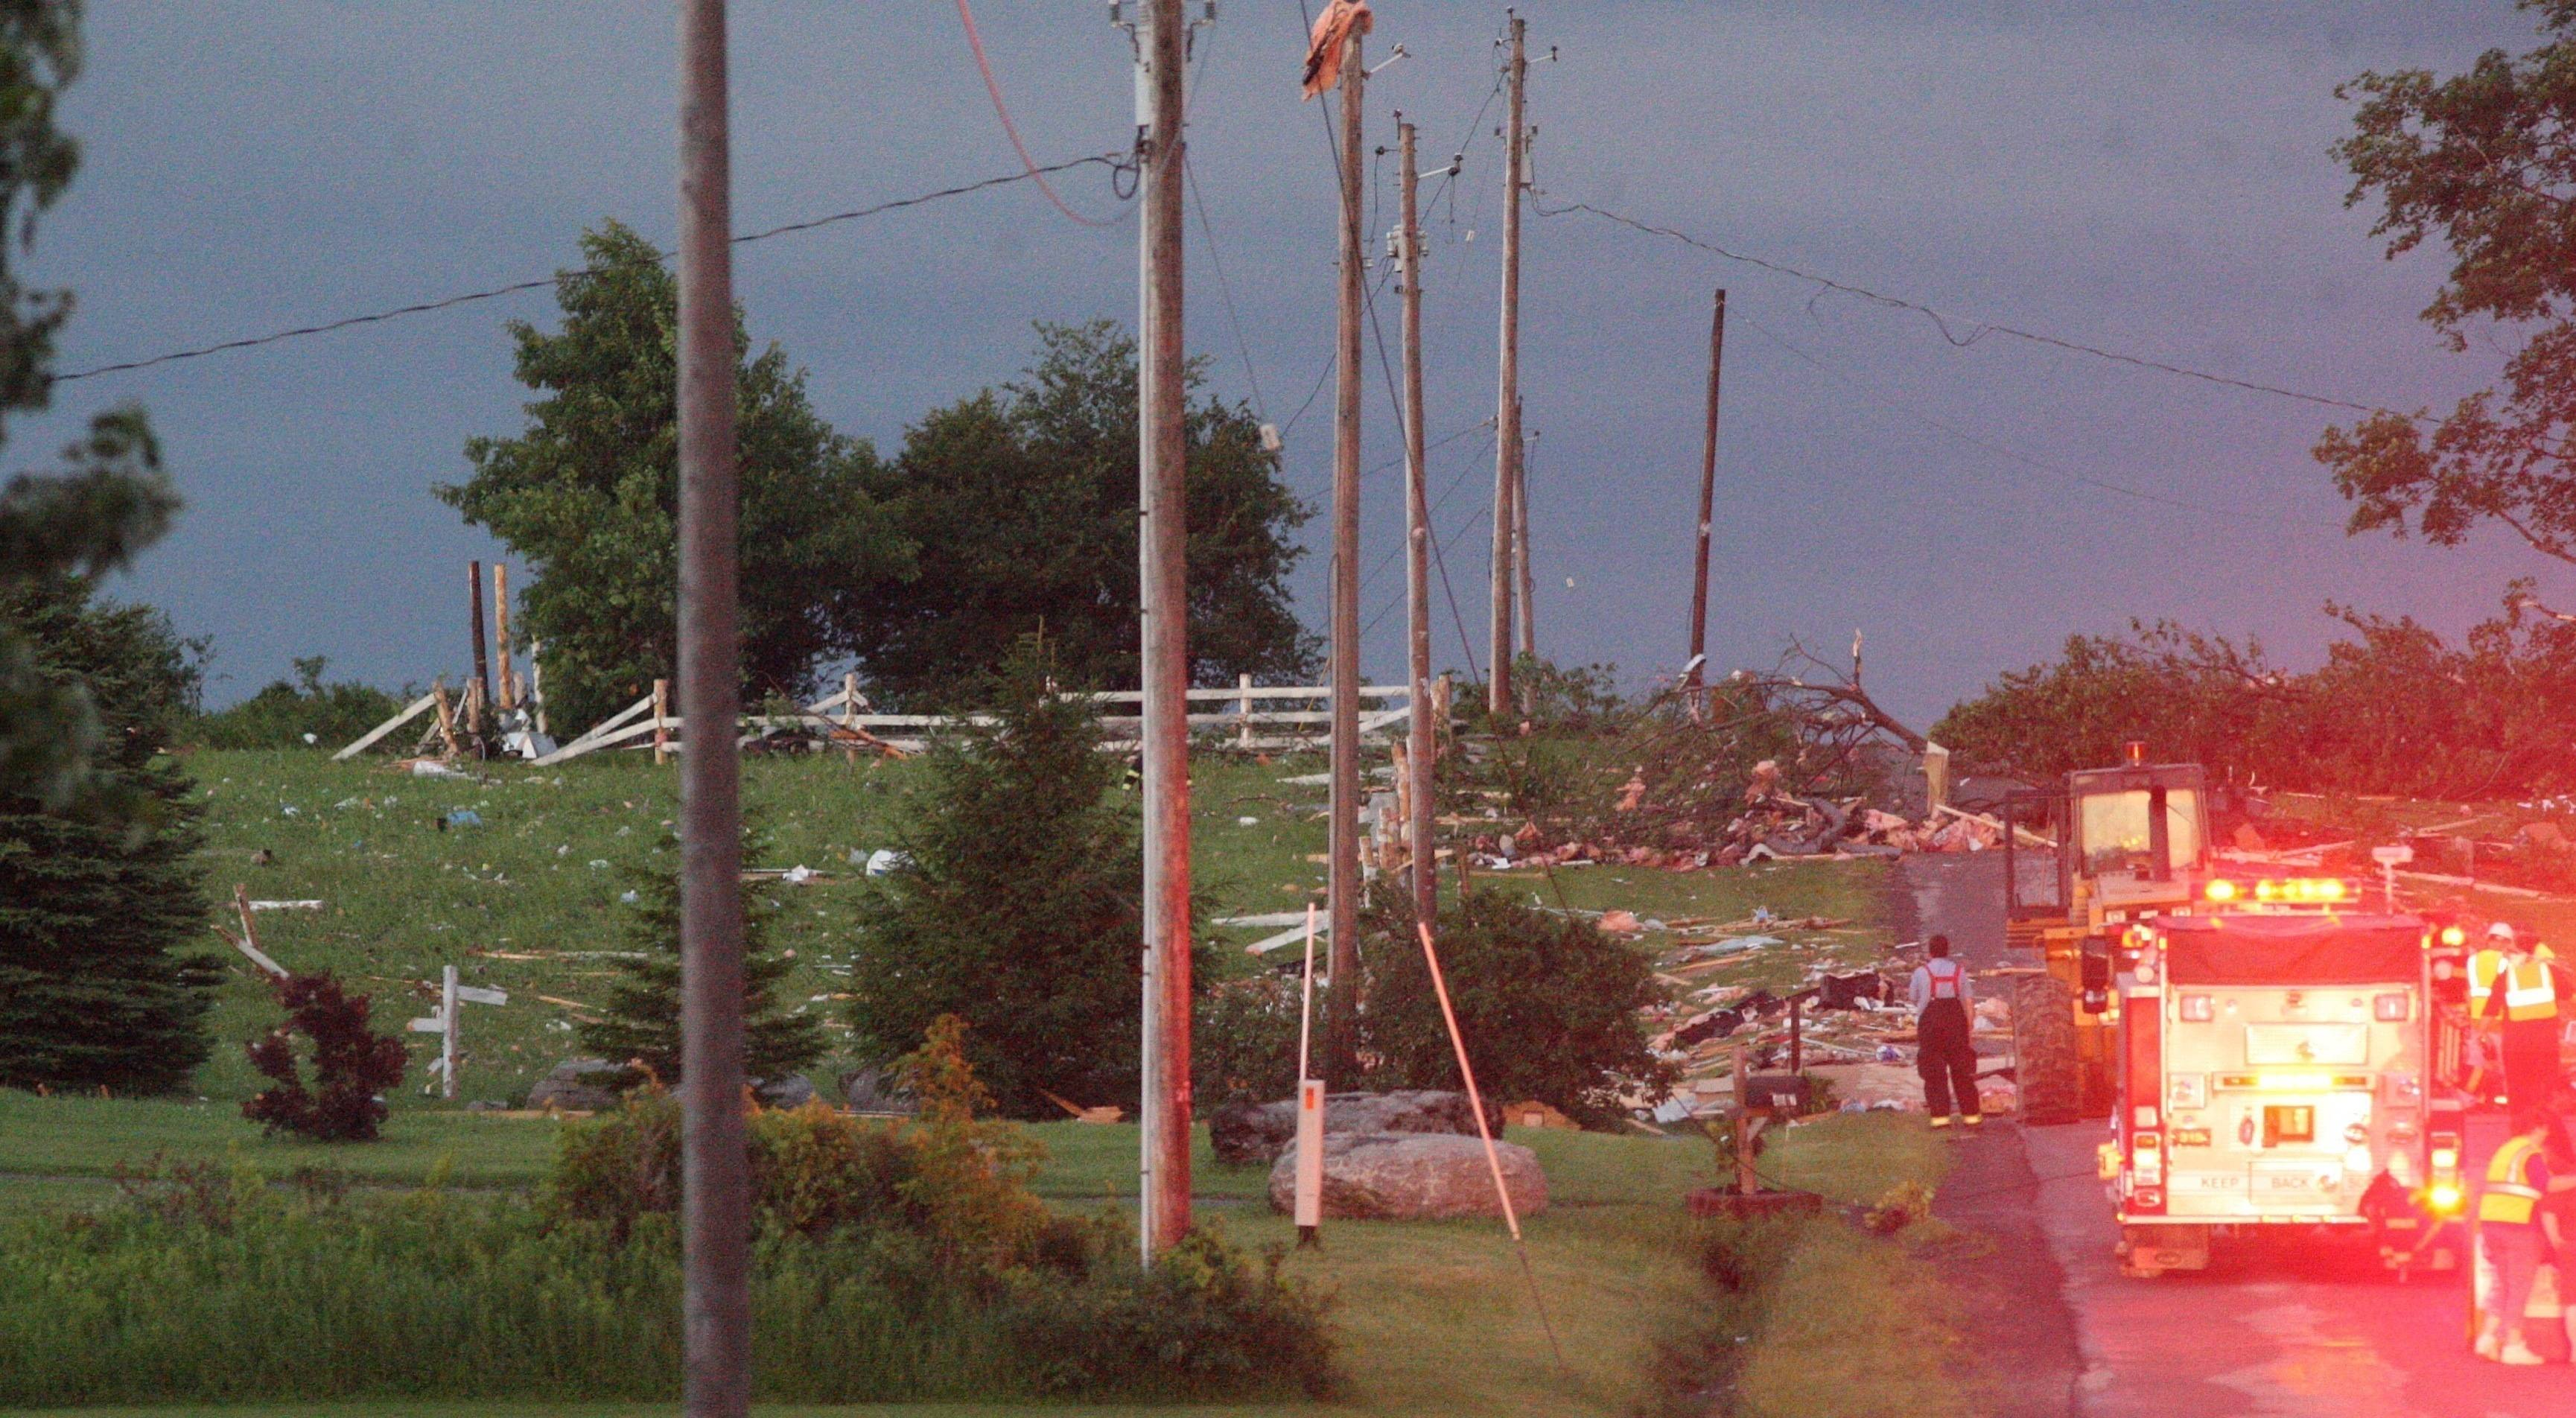 In central New York, four people died after storms hit the rural town of Smithfield, between Syracuse and Utica, the Madison County Sheriff's Office said. At least four homes were completely destroyed and numerous others were damaged.